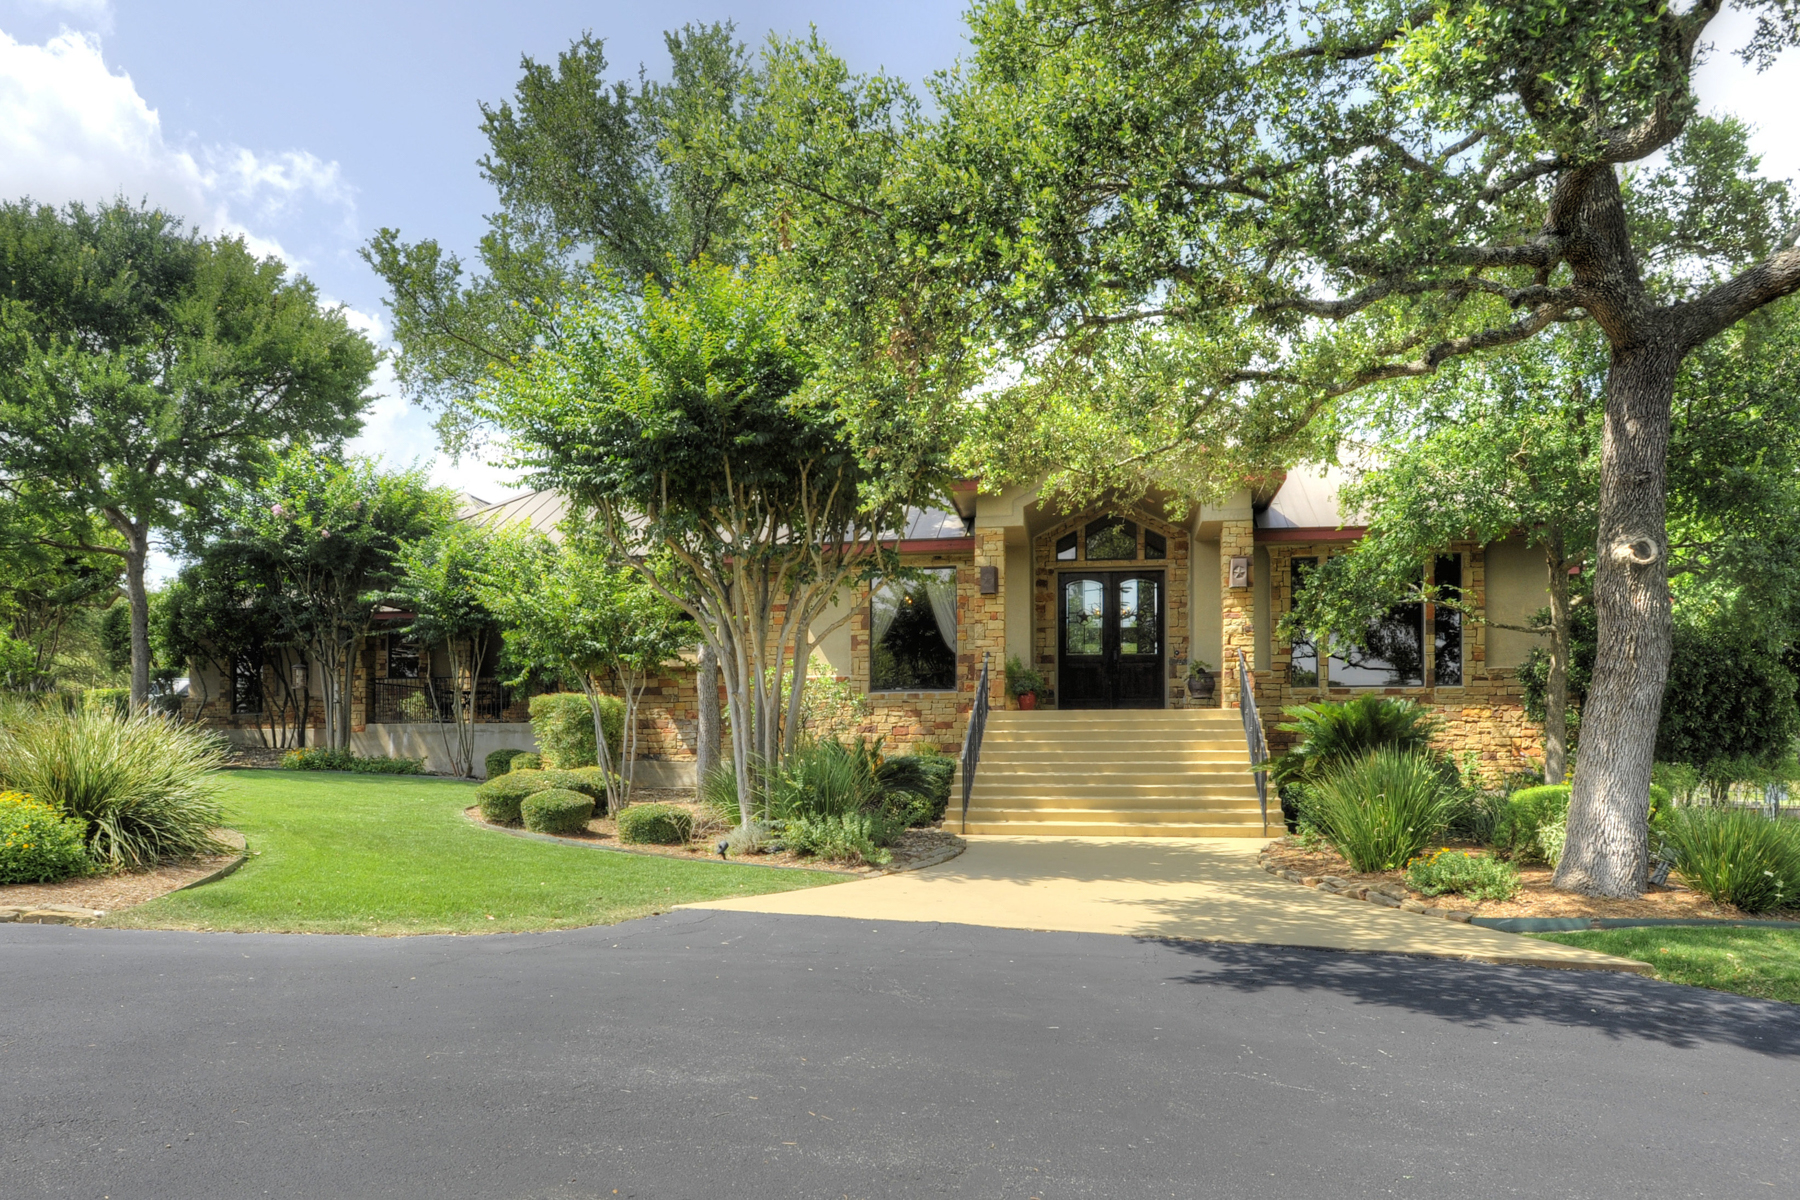 Casa Unifamiliar por un Venta en Gorgeous Estate in Dove Country Farms 113 Dove Mountain Boerne, Texas 78006 Estados Unidos